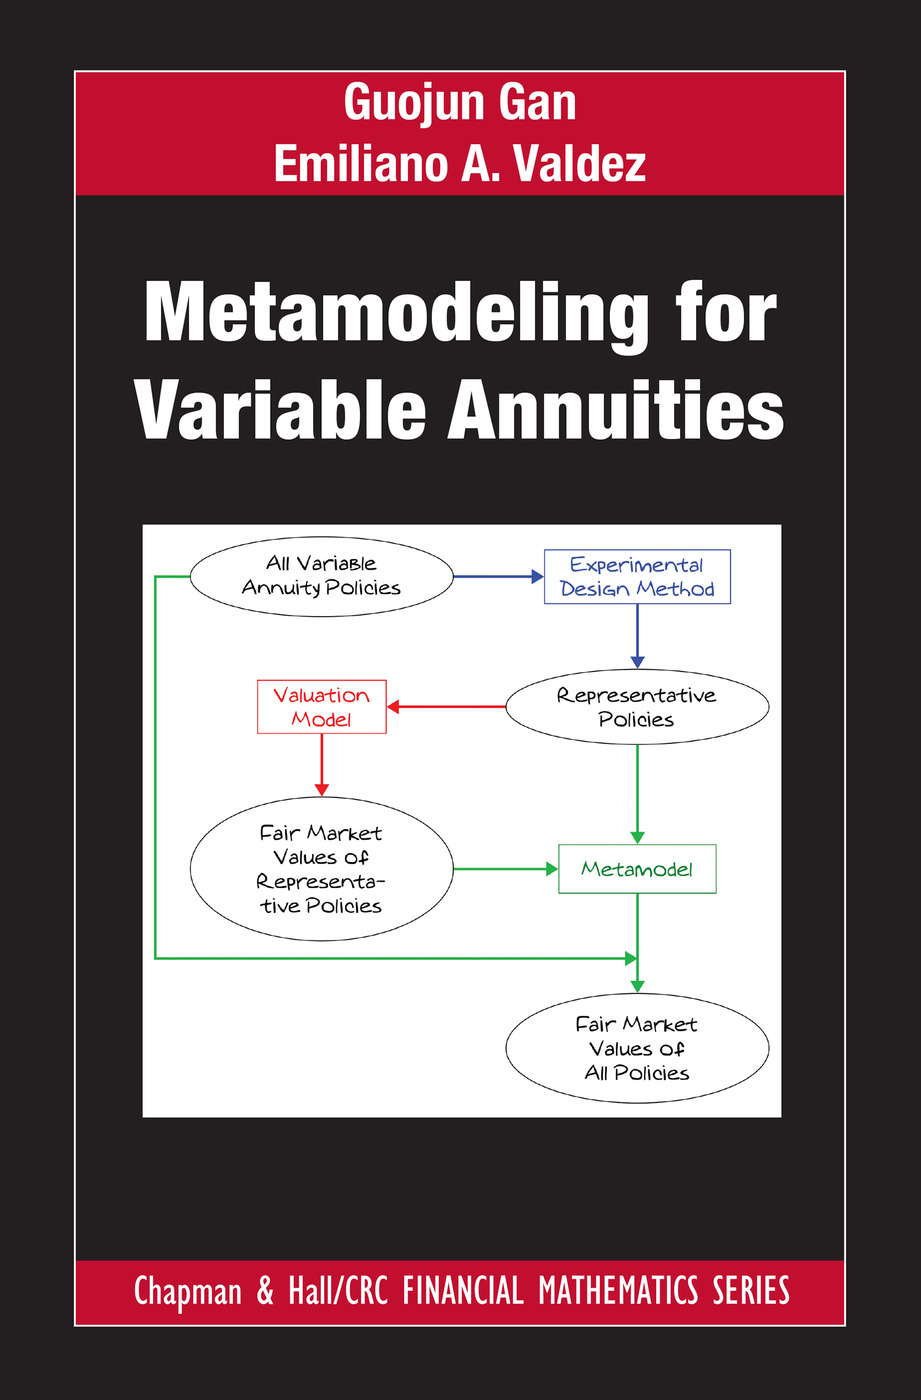 Metamodeling for Variable Annuities book cover